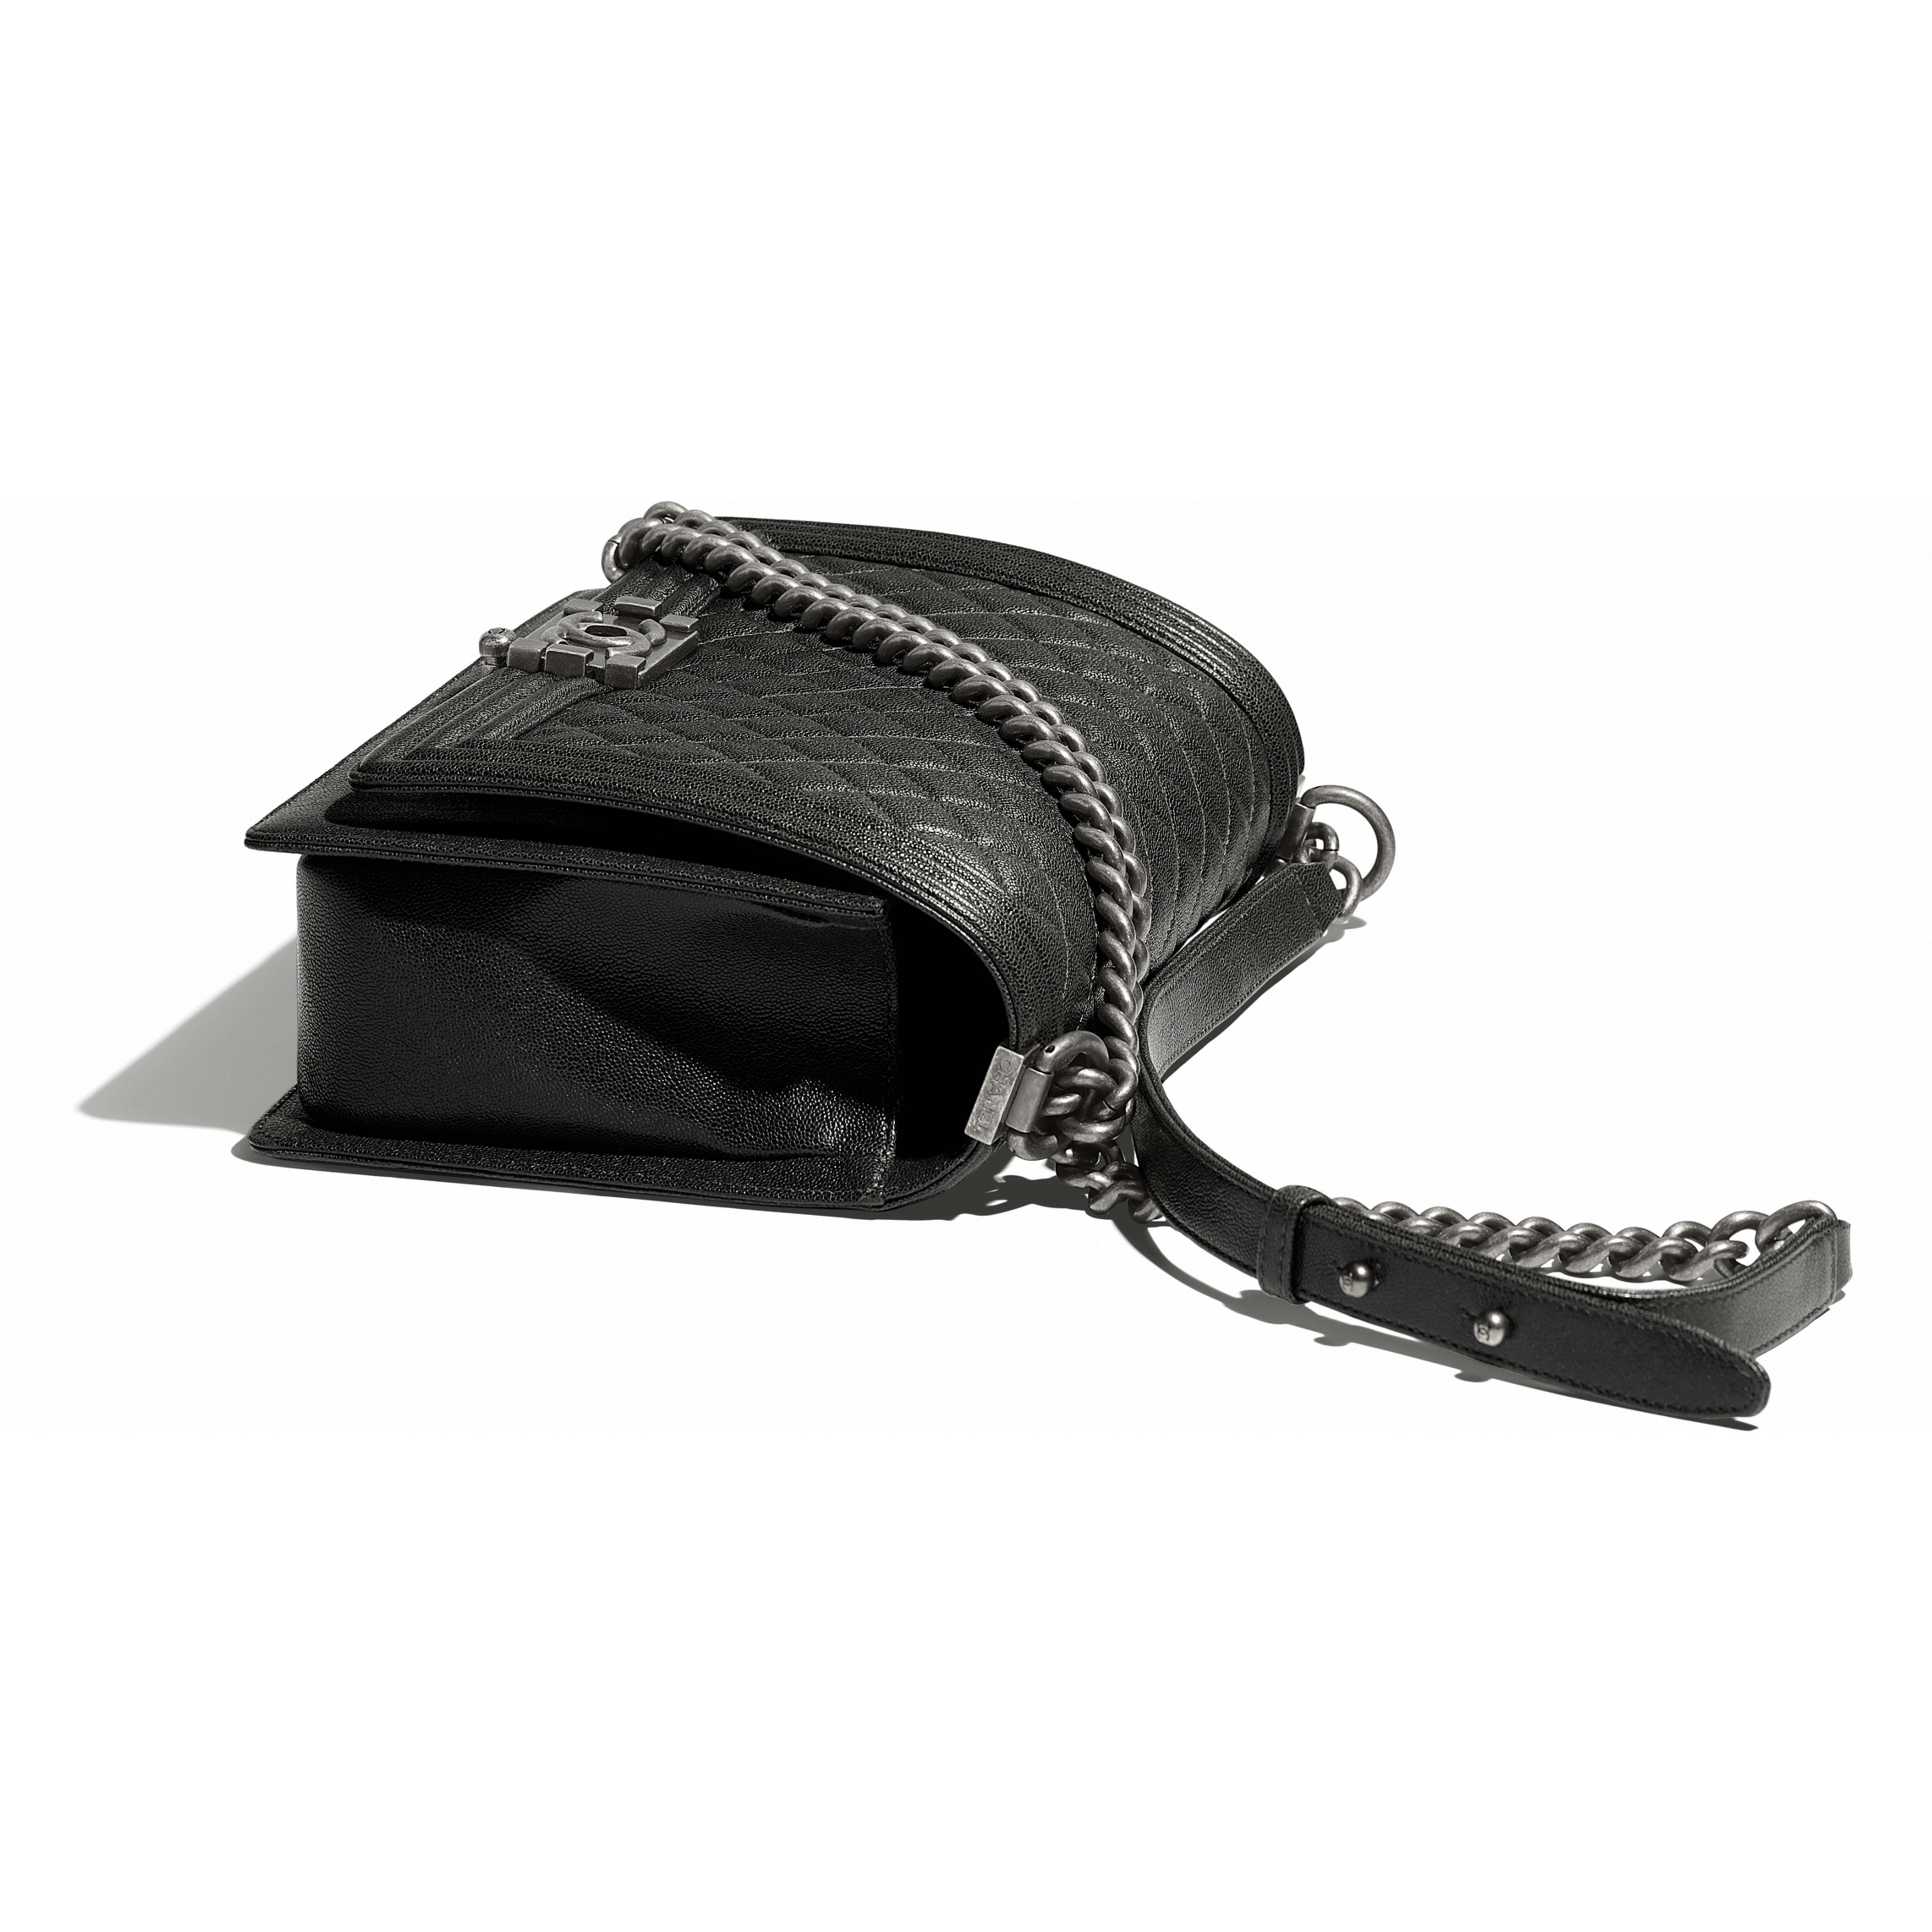 Large BOY CHANEL Handbag Grained Calfskin & Ruthenium-Finish Metal Charcoal -                                            view 3 - see full sized version